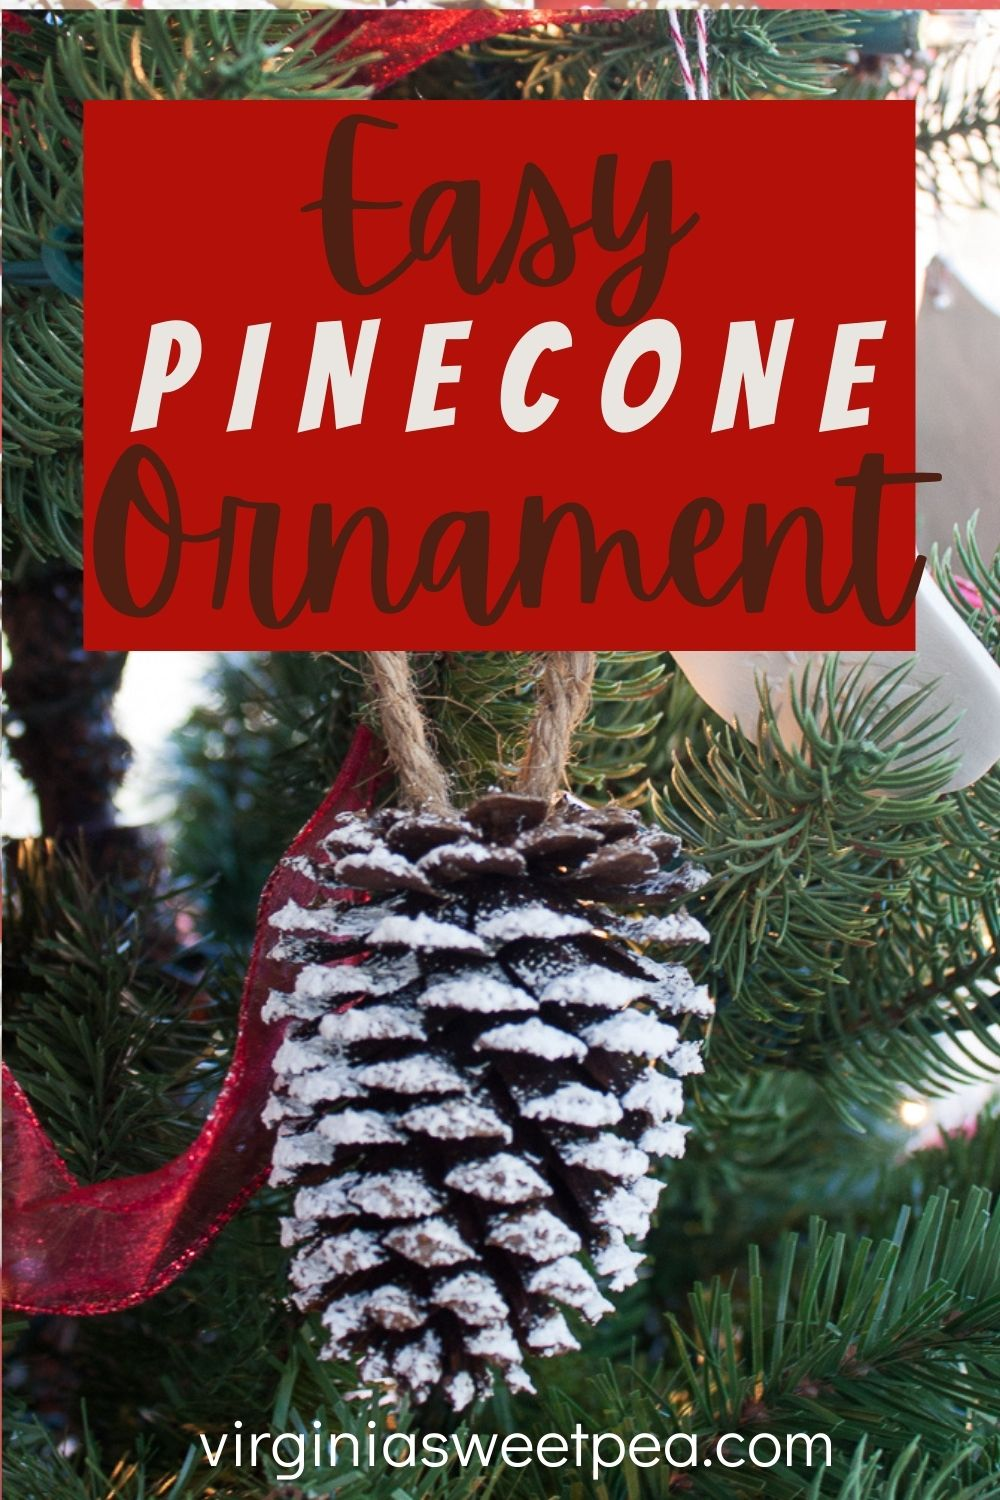 Easy Pine Cone Christmas Ornaments - Use pine cones gathered in the woods to make the easiest Christmas ornaments for your tree.  These snow-kissed ornaments are a Christmas craft easy enough for kids to help to make. #christmasornament #pineconecraft #pineconeornament #handmadechristmasornament via @spaula